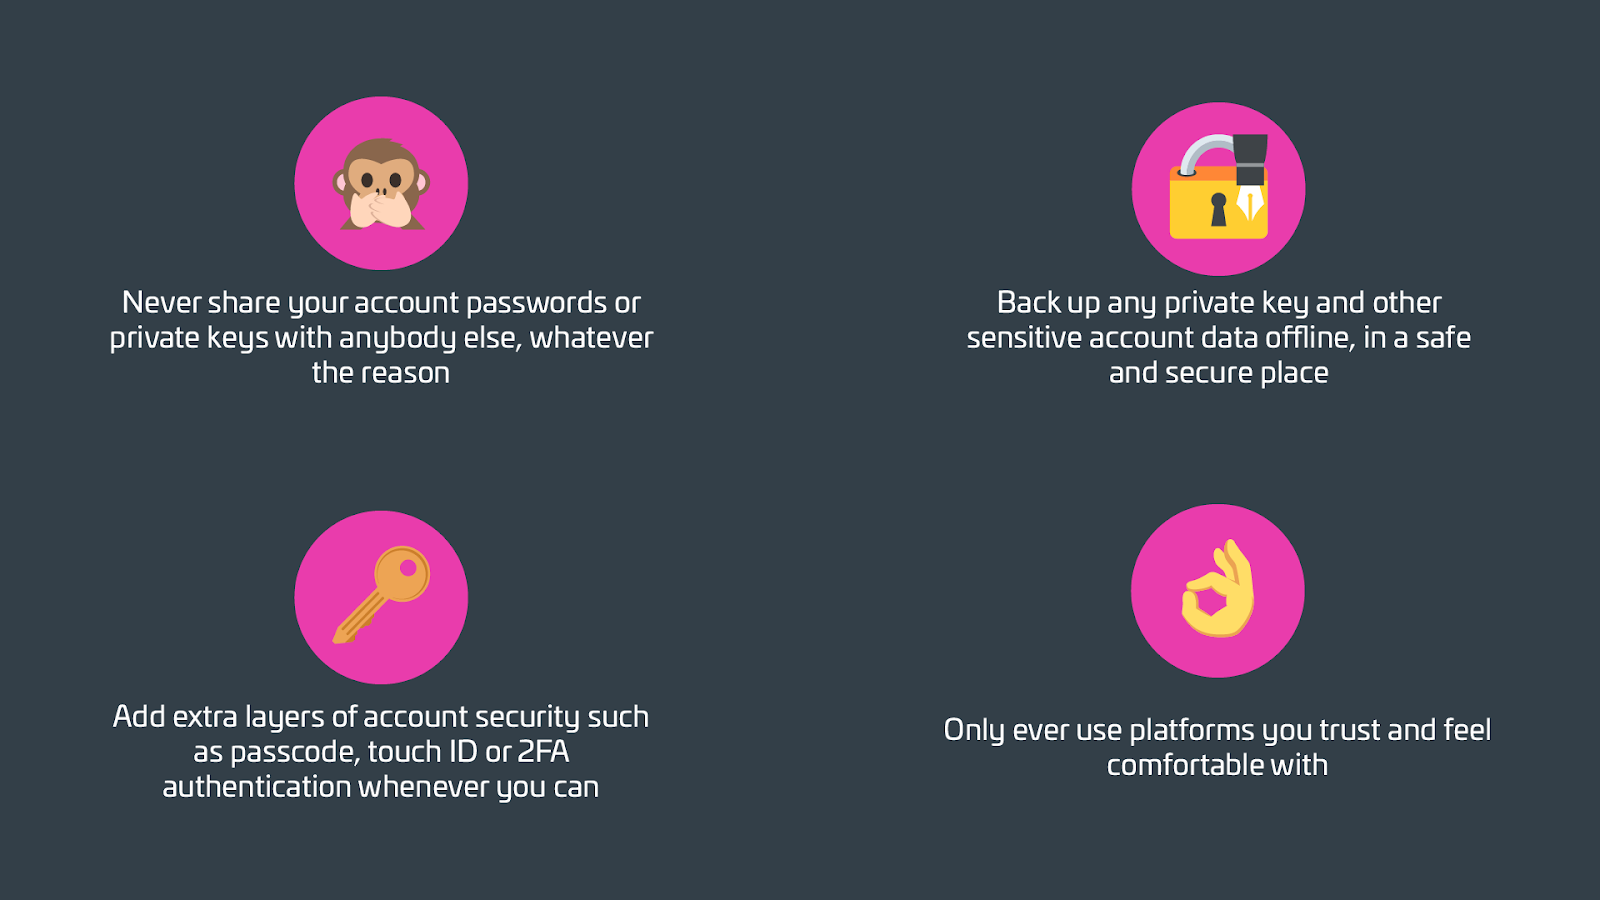 Never share your account passwords or private keys with anybody else, whatever the reasonBack up any private key and other sensitive account data offline, in a safe and secure placeAdd extra layers of account security such as passcode, touch ID or 2FA authentication whenever you canOnly ever use platforms you trust and feel comfortable with